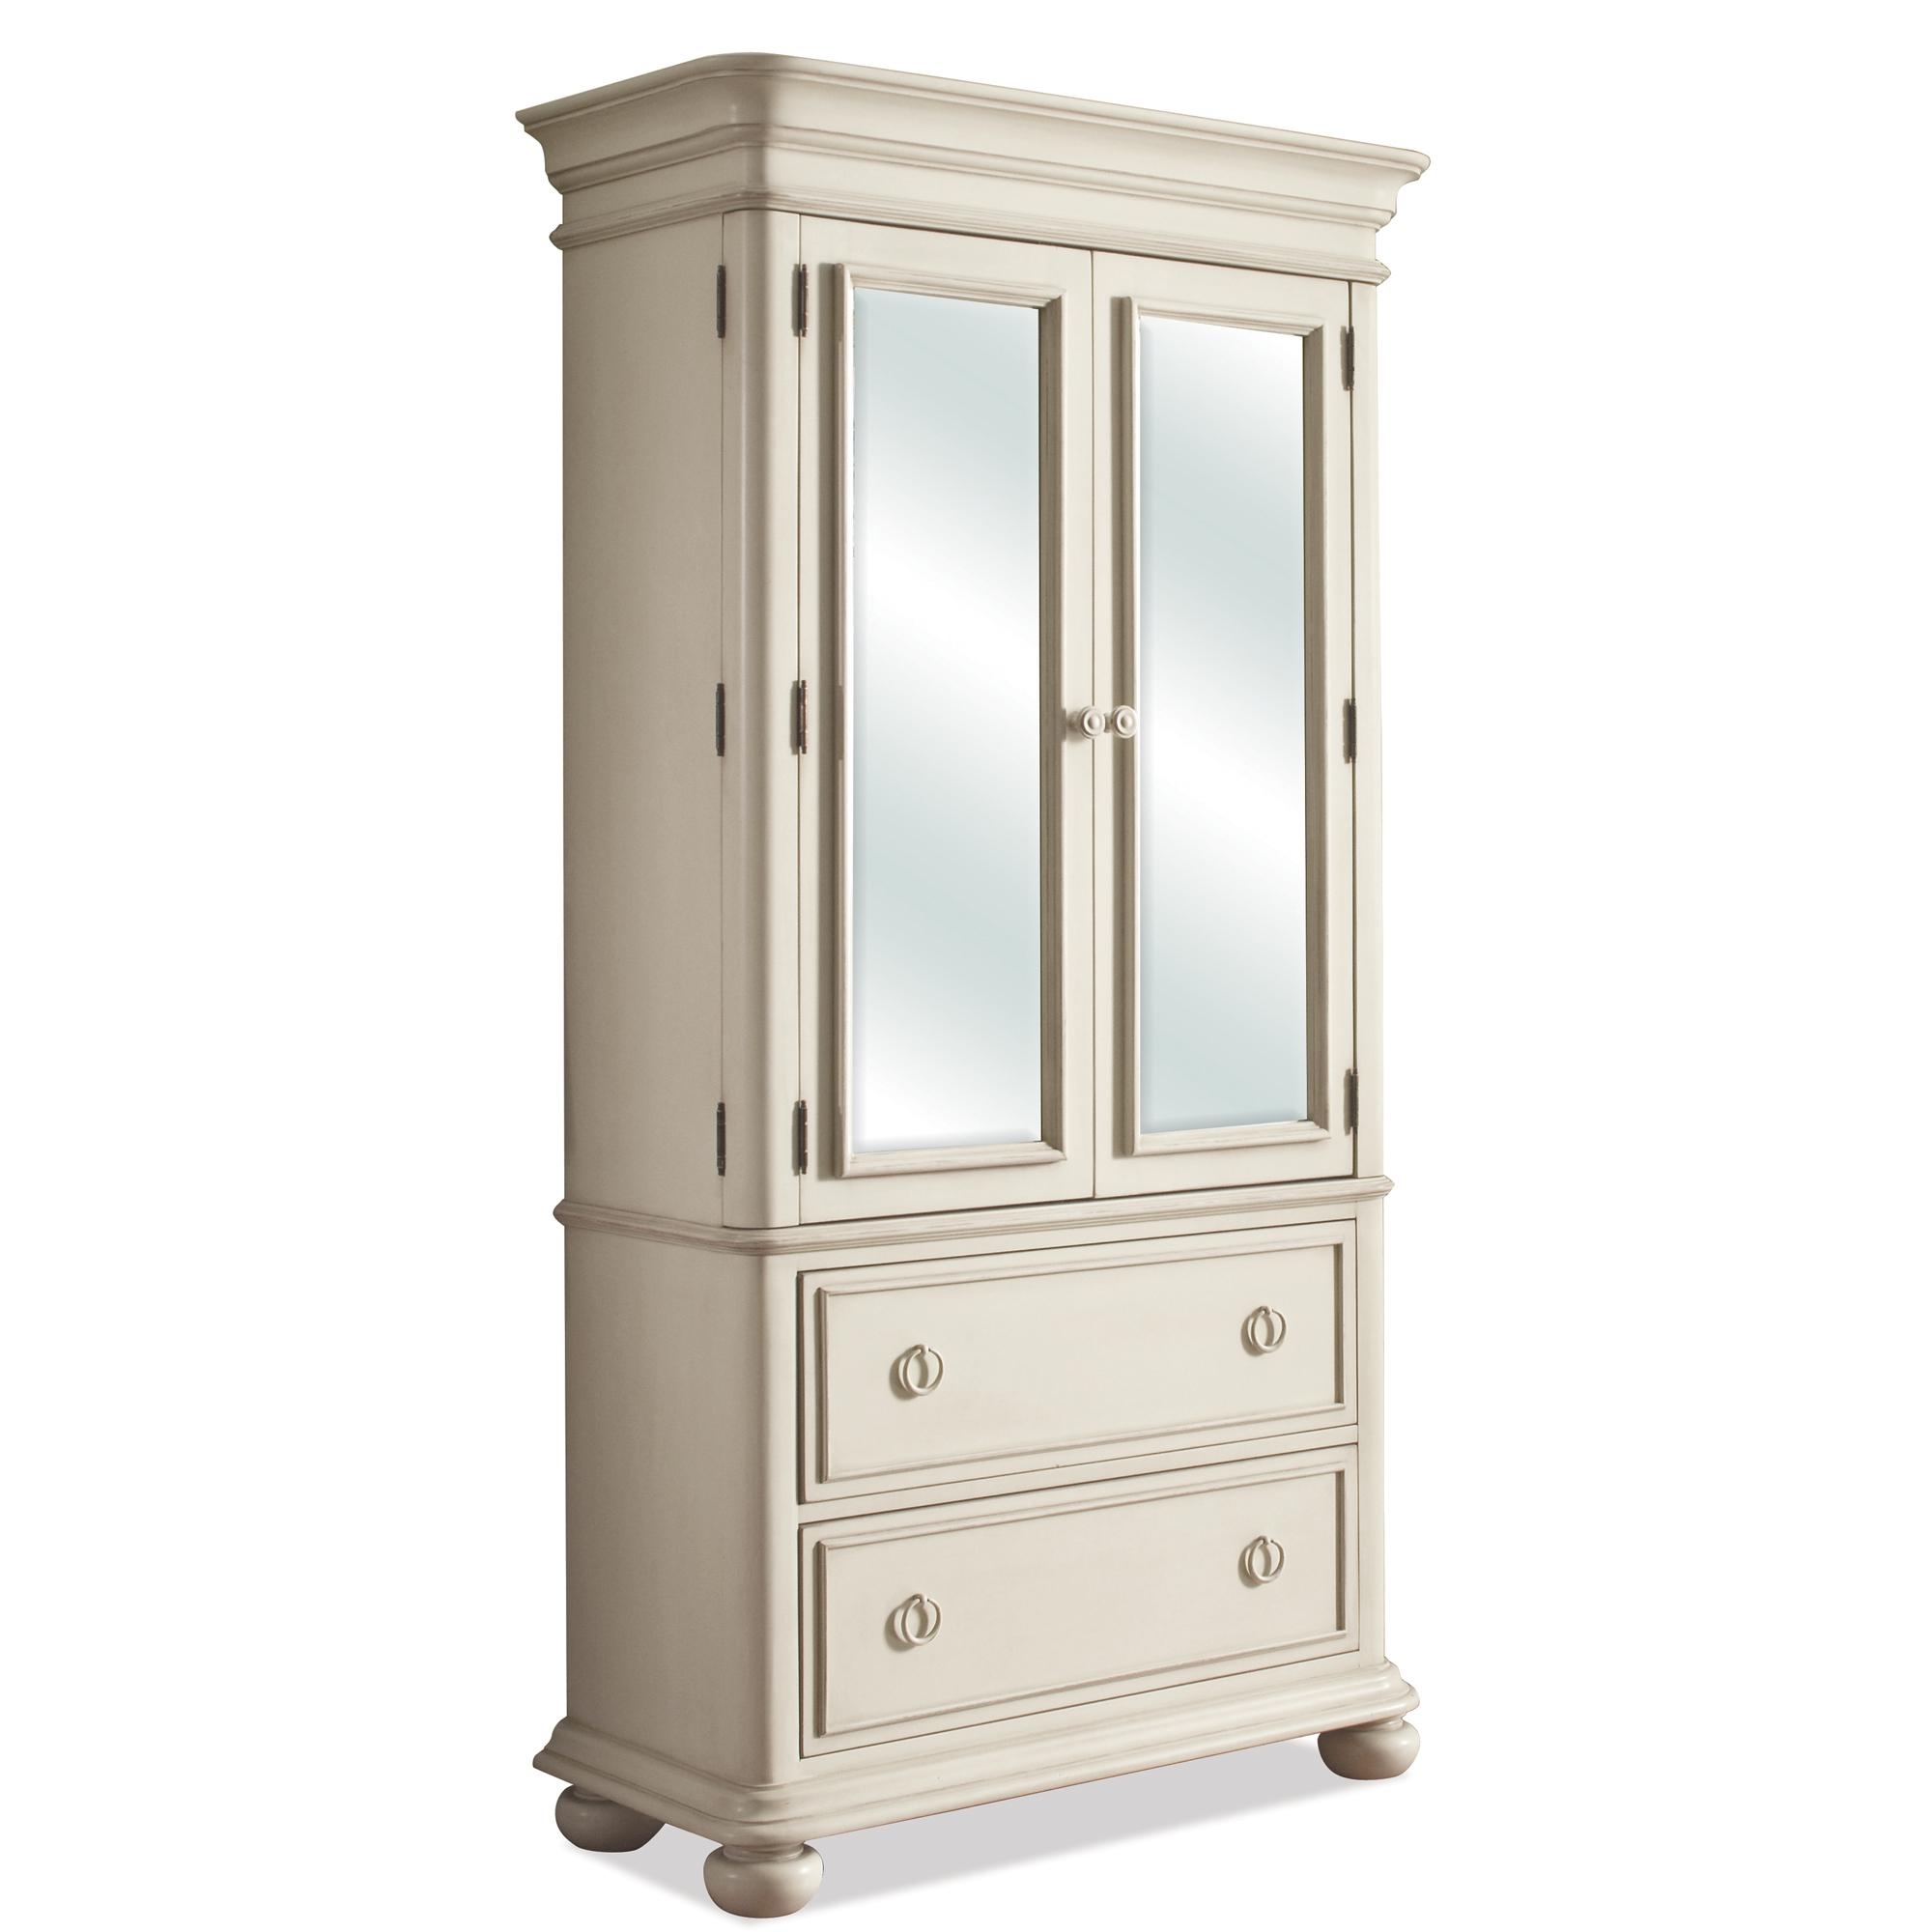 Placid Cove Mirrored 2 Door Armoire With 2 Drawers By Riverside Furniture